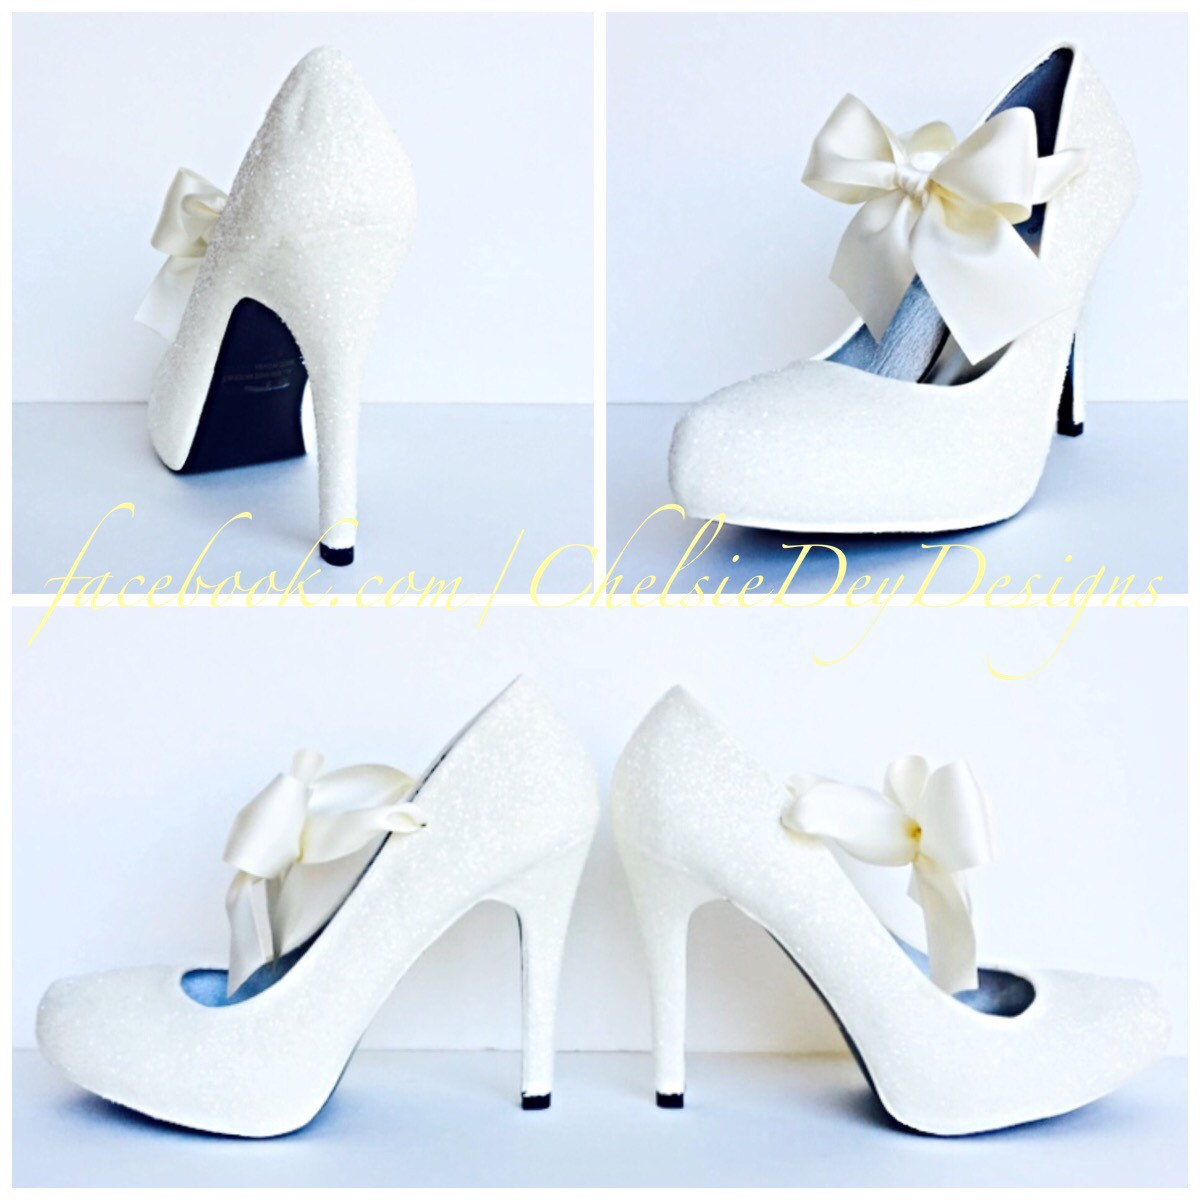 abc47e1615e74 White Ivory High Heels - Glitter Pump High Heels with Ivory Satin Bows -  Sparkly Wedding Shoes - Glitzy Prom Heels